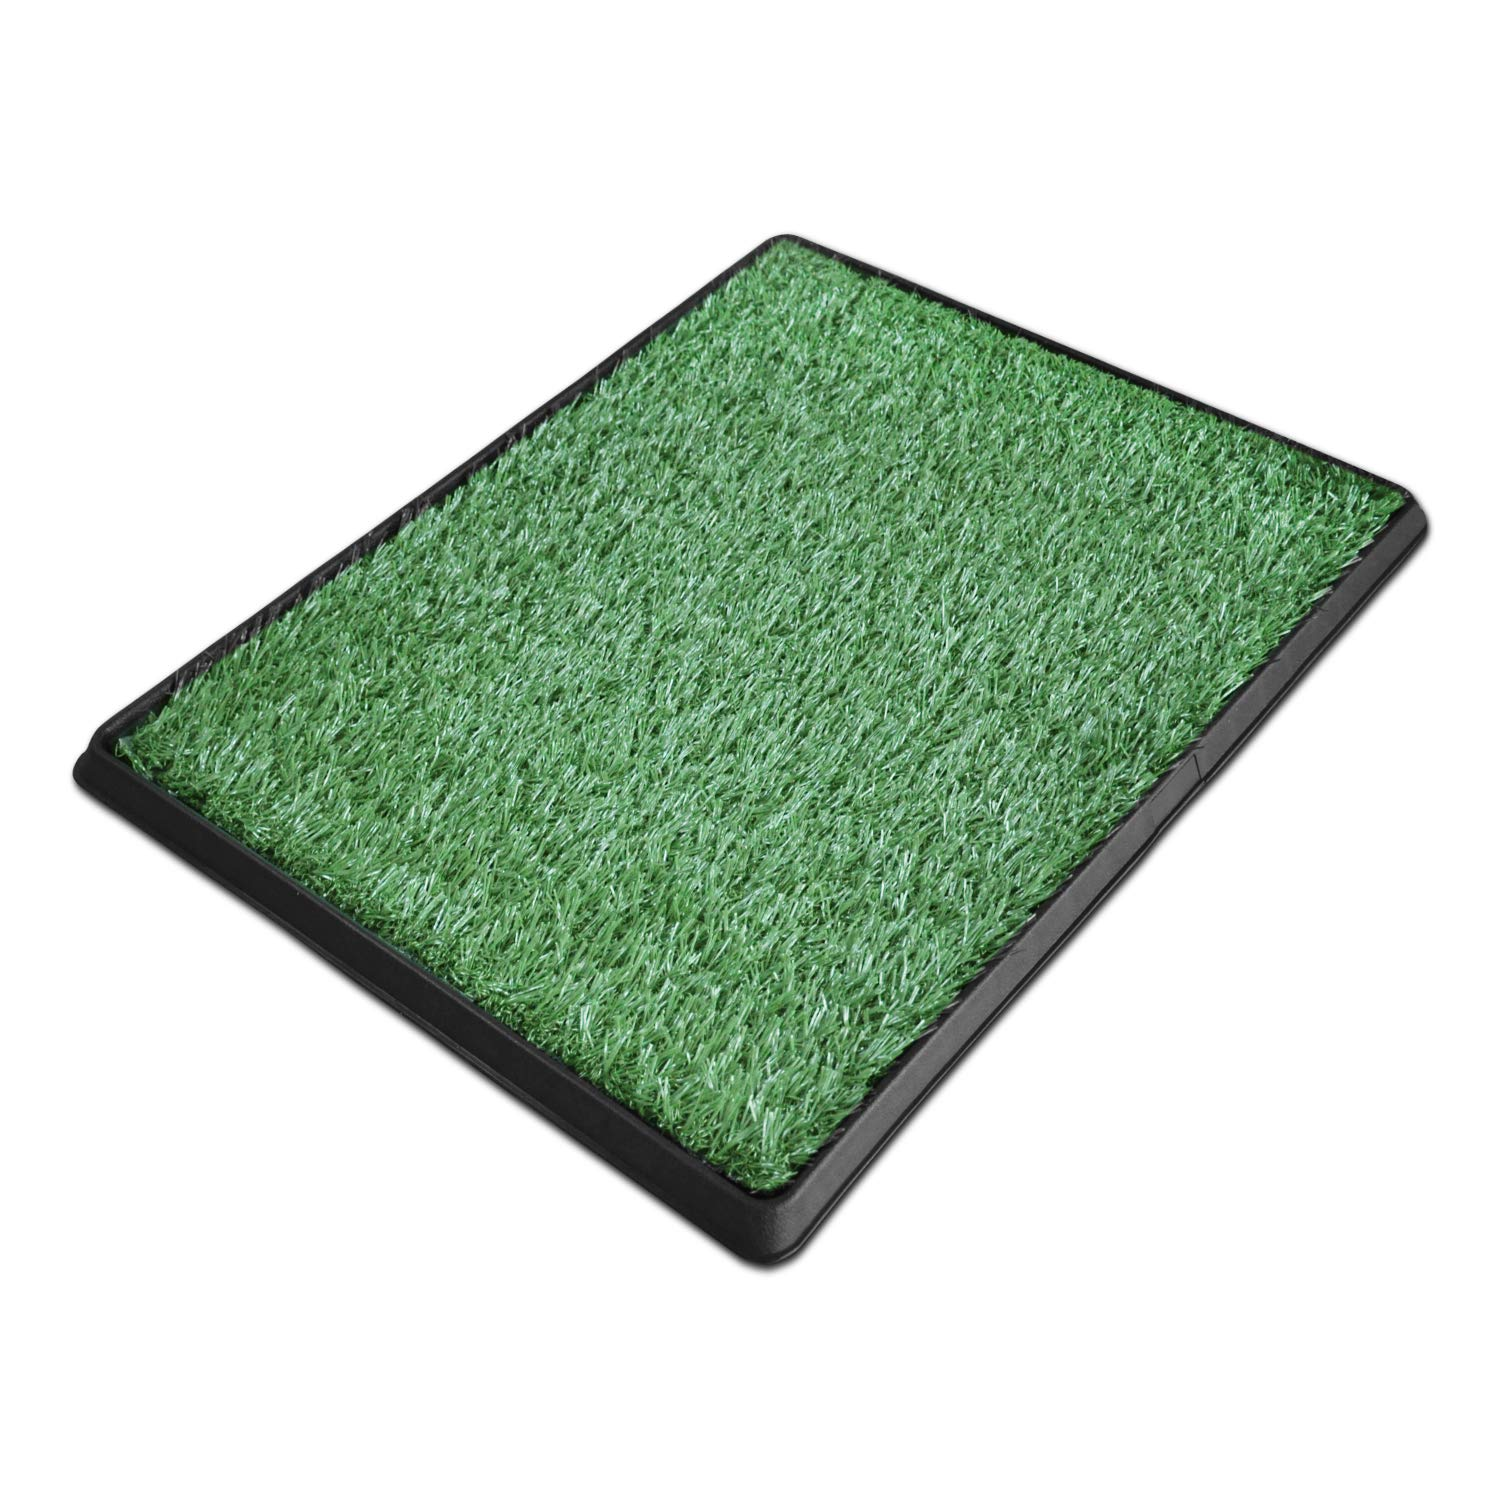 DELMANGO Dog Potty Trainer The Indoor Restroom for Pets with Artificial Grass 20X30in XL Puppy Potty - 3 Layered System Pan Tray Indoor Use Easy to Clean. by DELMANGO